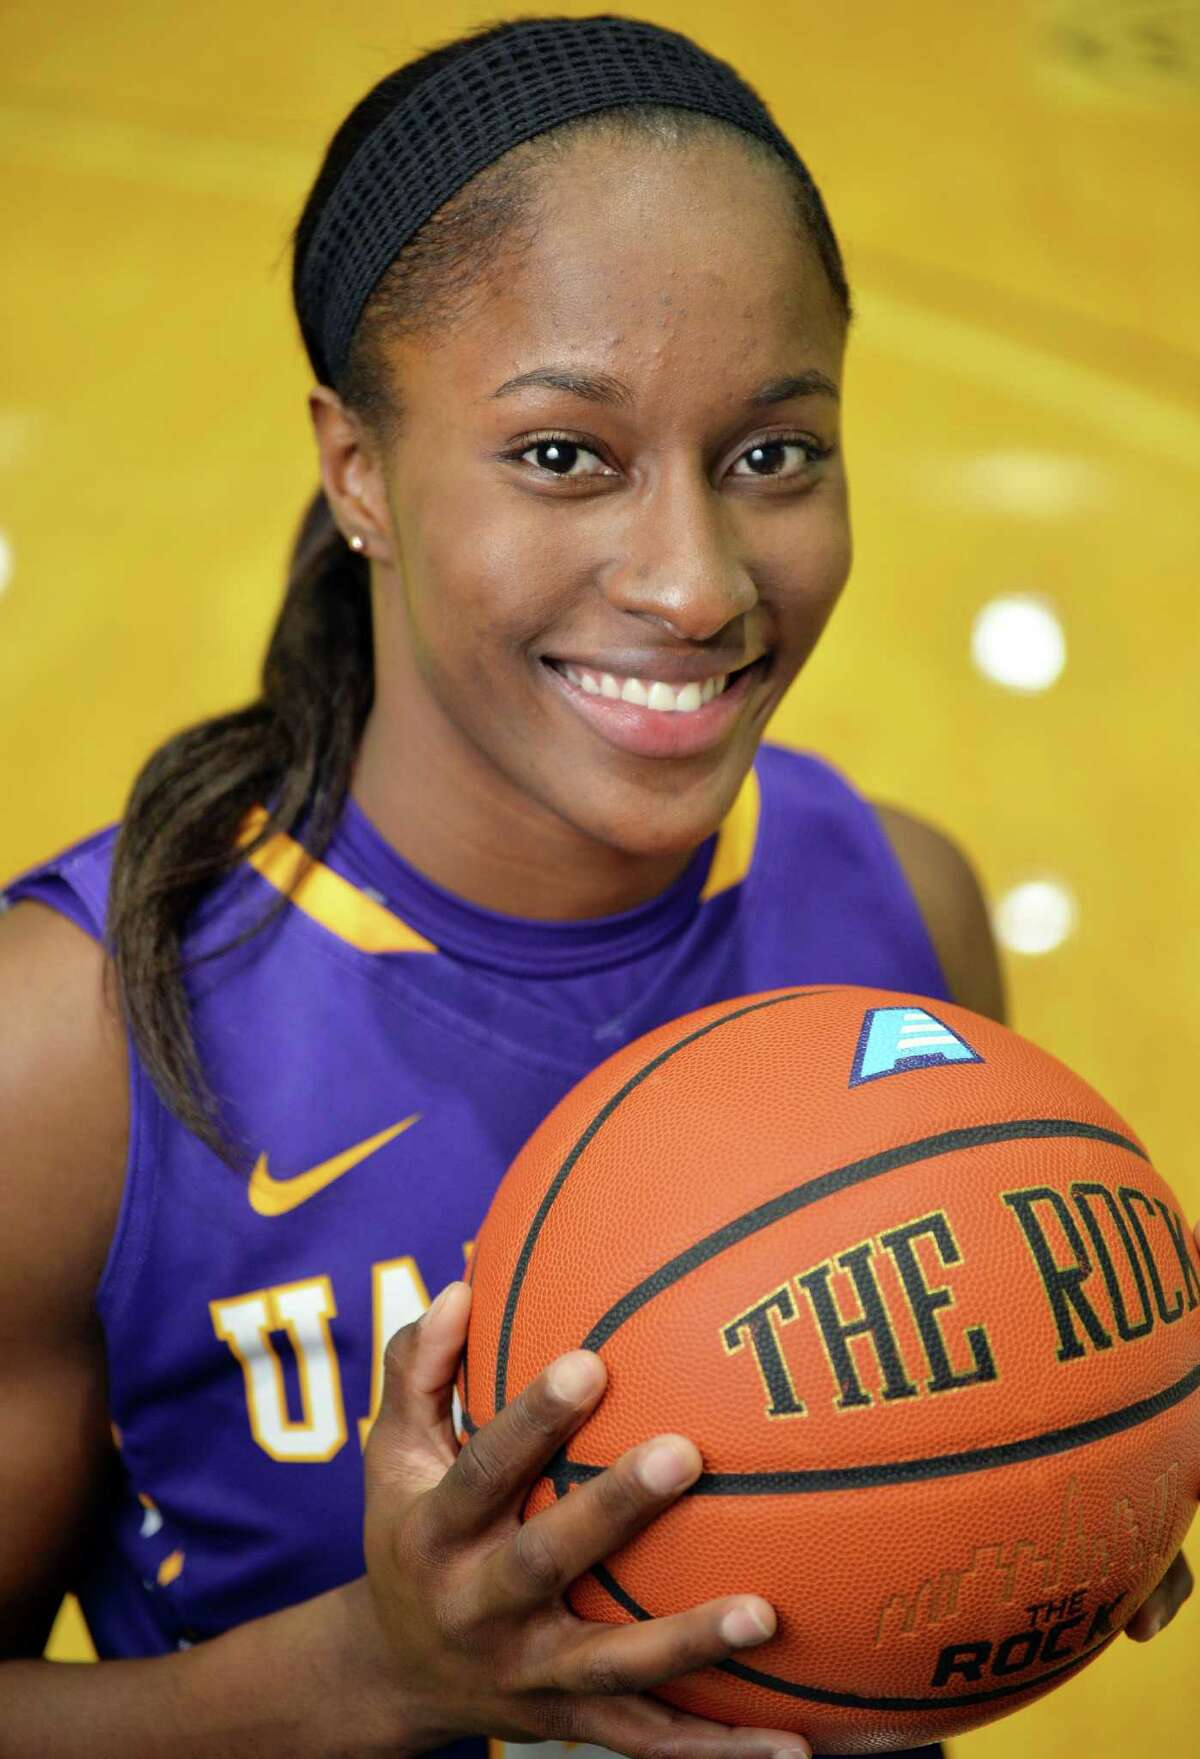 Shereesha Richards, the University of Albany women's basketball team's star forward, during a photo shoot at SEFCU arena Friday Jan. 8, 2016 in Albany, NY. (John Carl D'Annibale / Times Union)